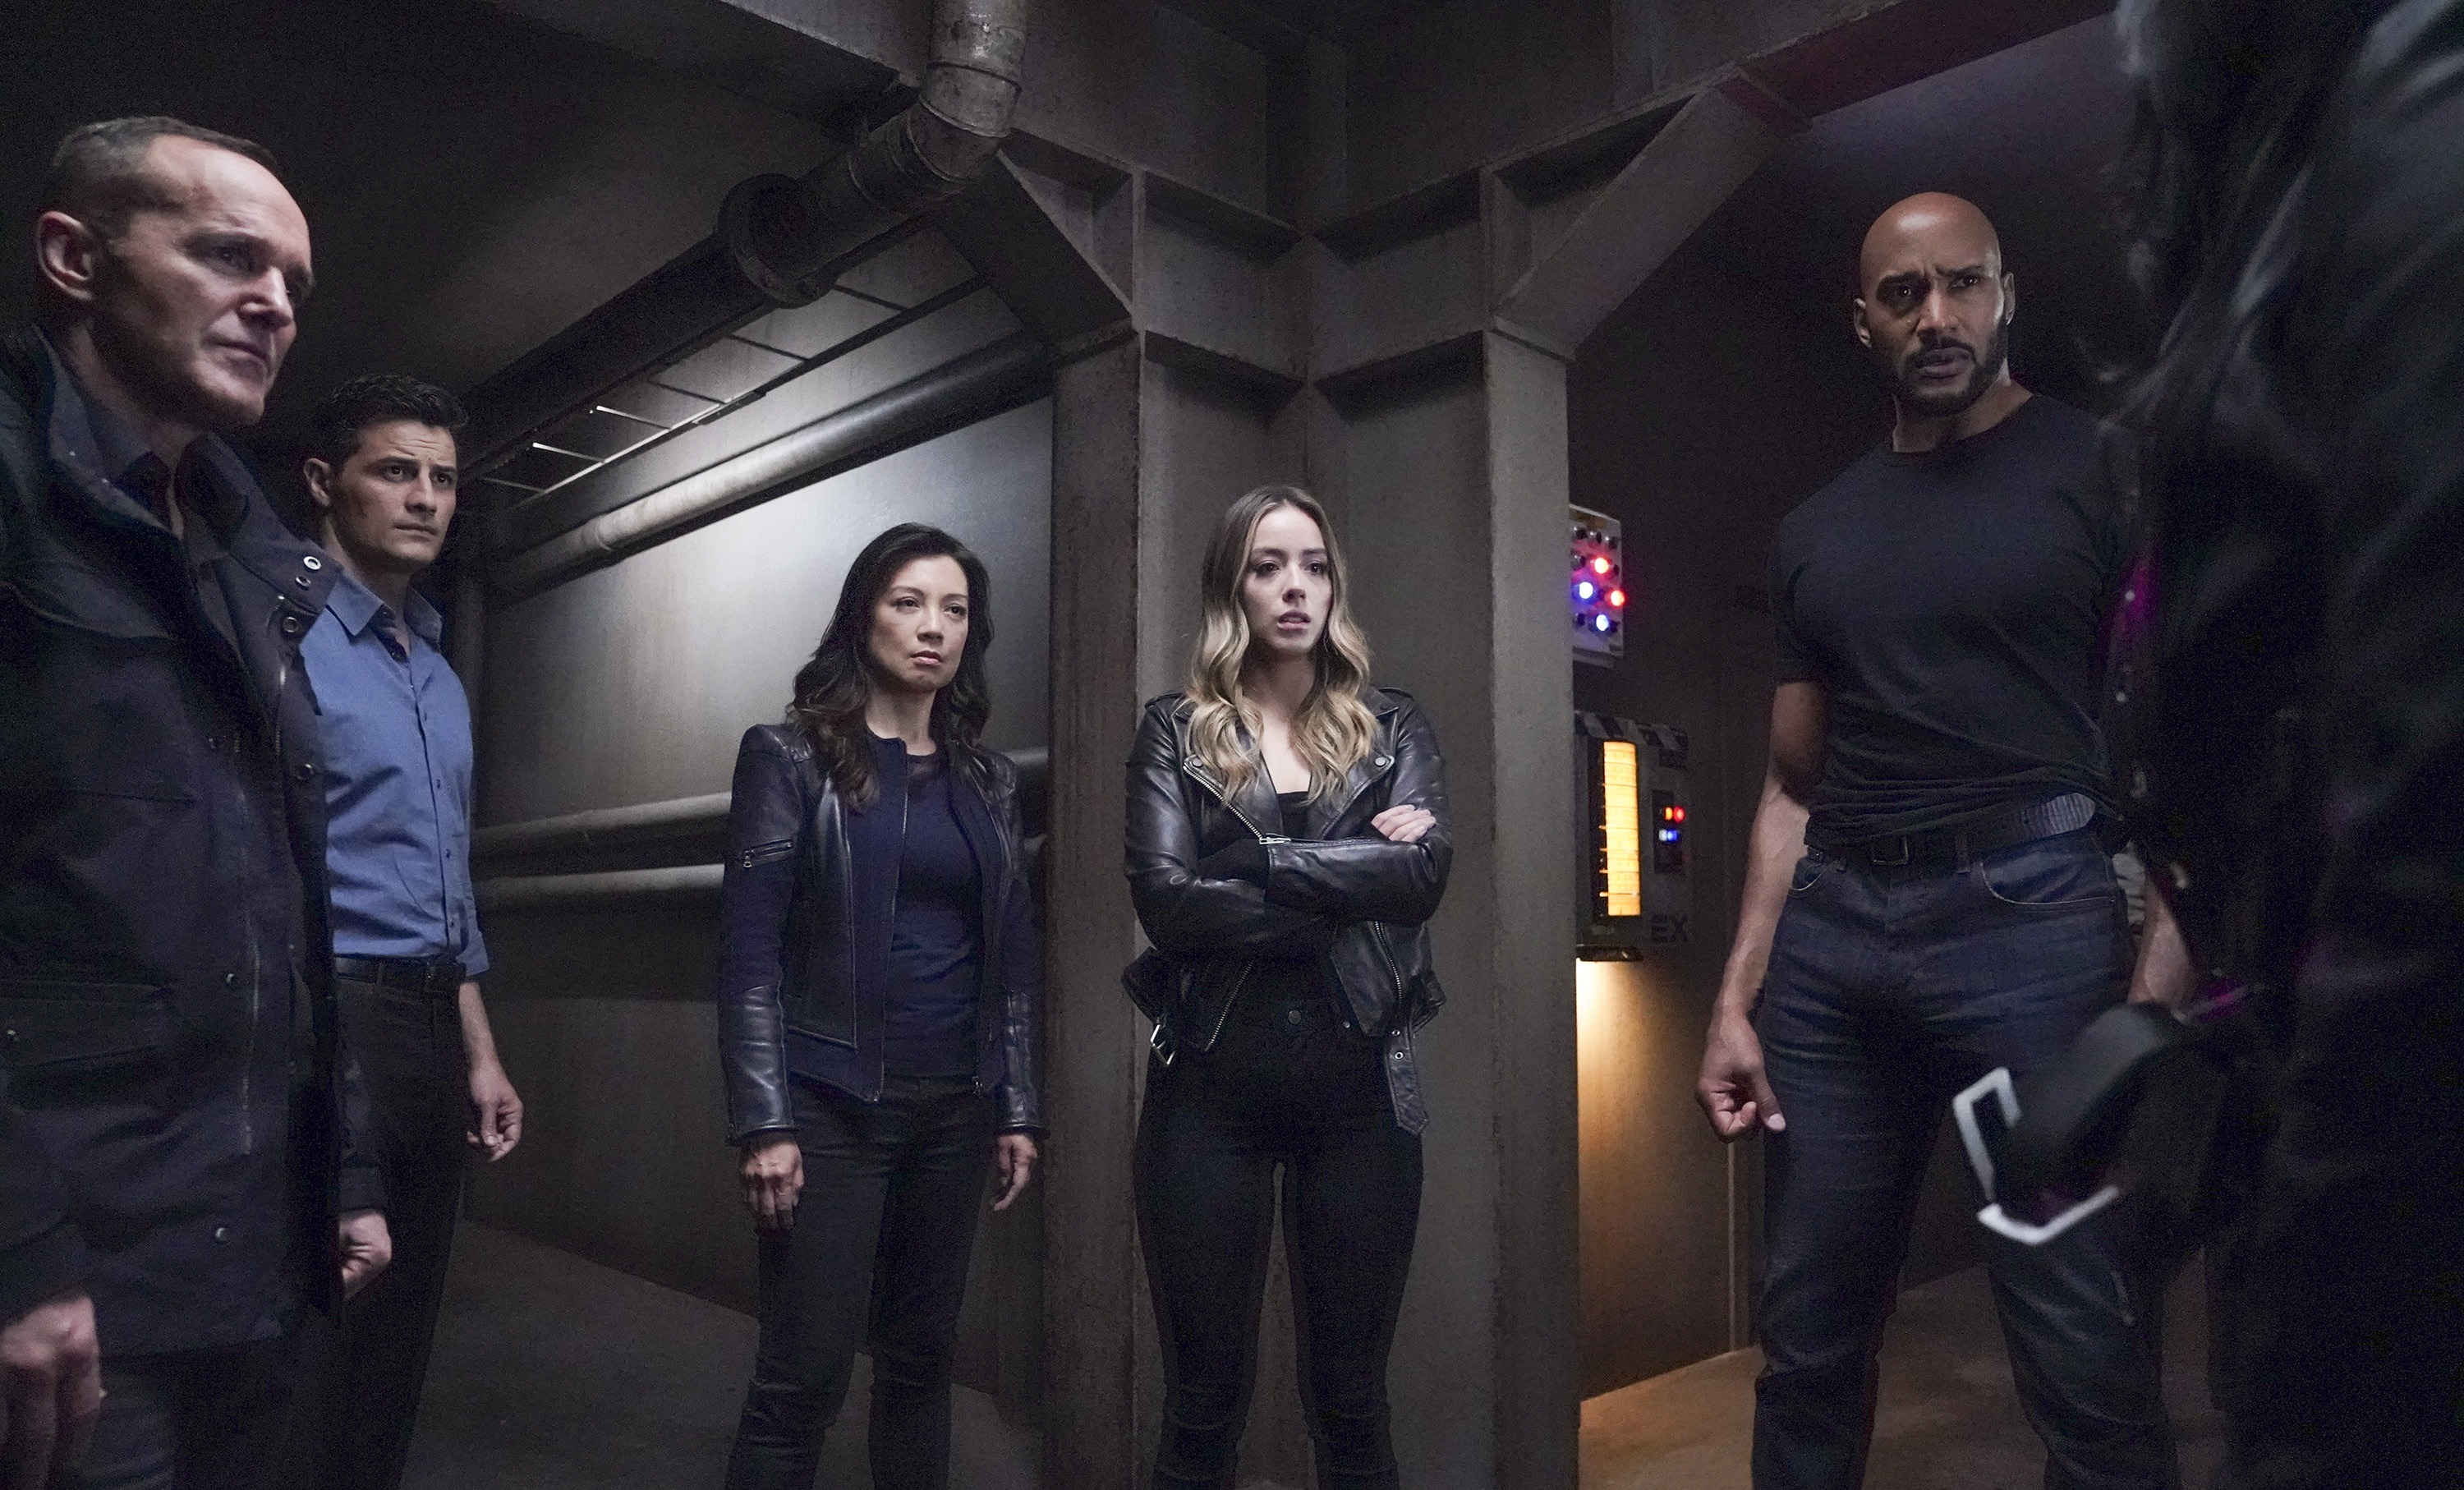 Marvel's Agents of S.H.I.E.L.D. Season 7 11